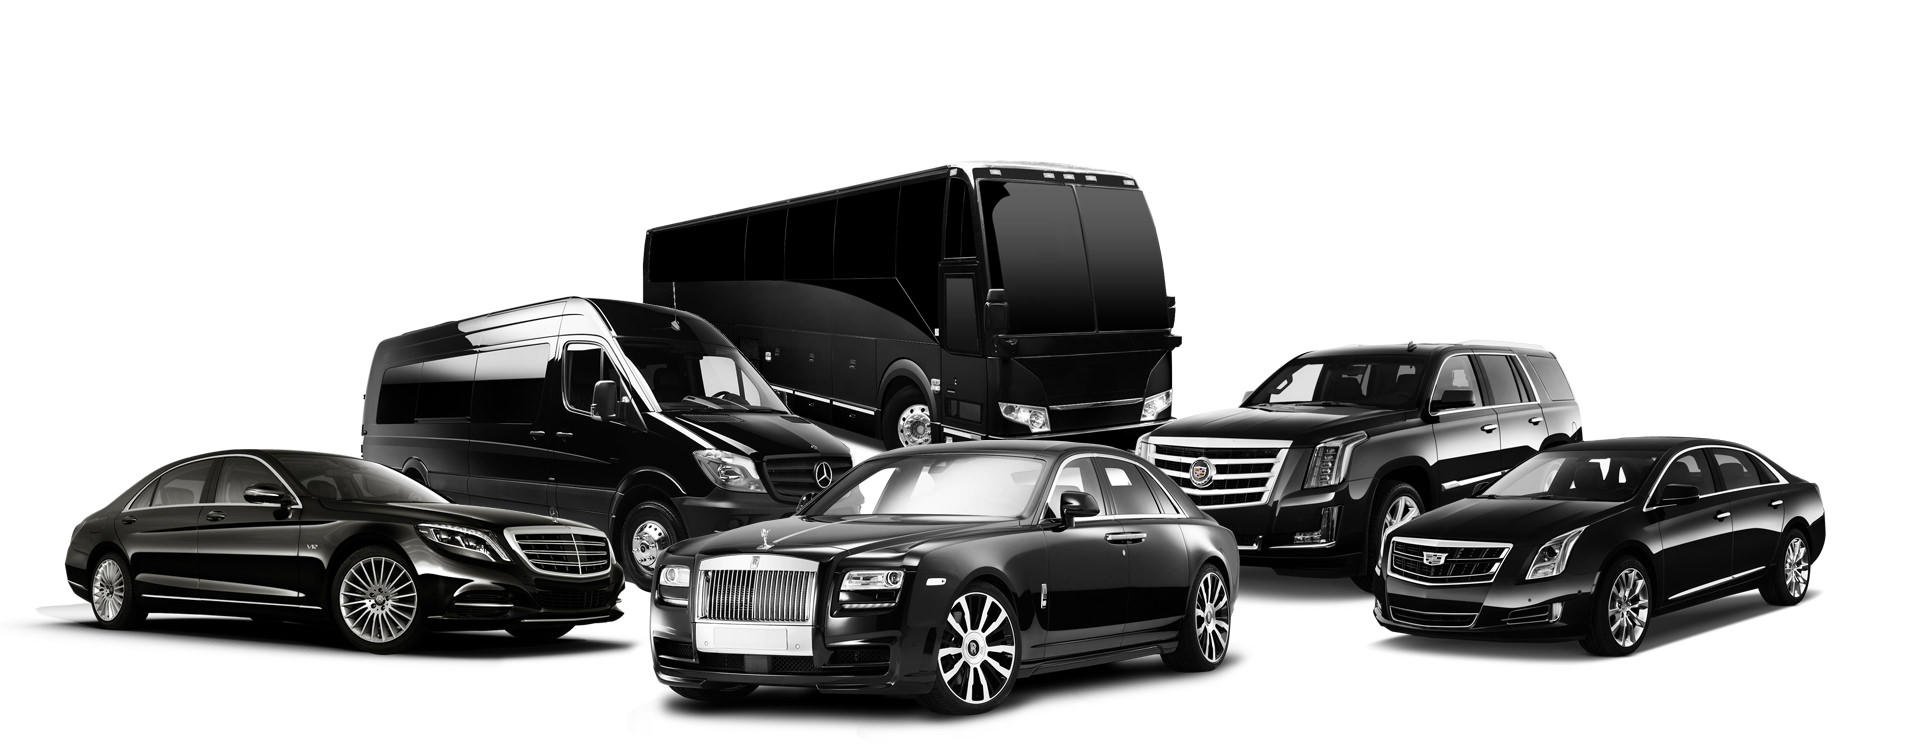 worldwide-executive-car-service-global-luxury-limo-limousine-transportation-shuttle